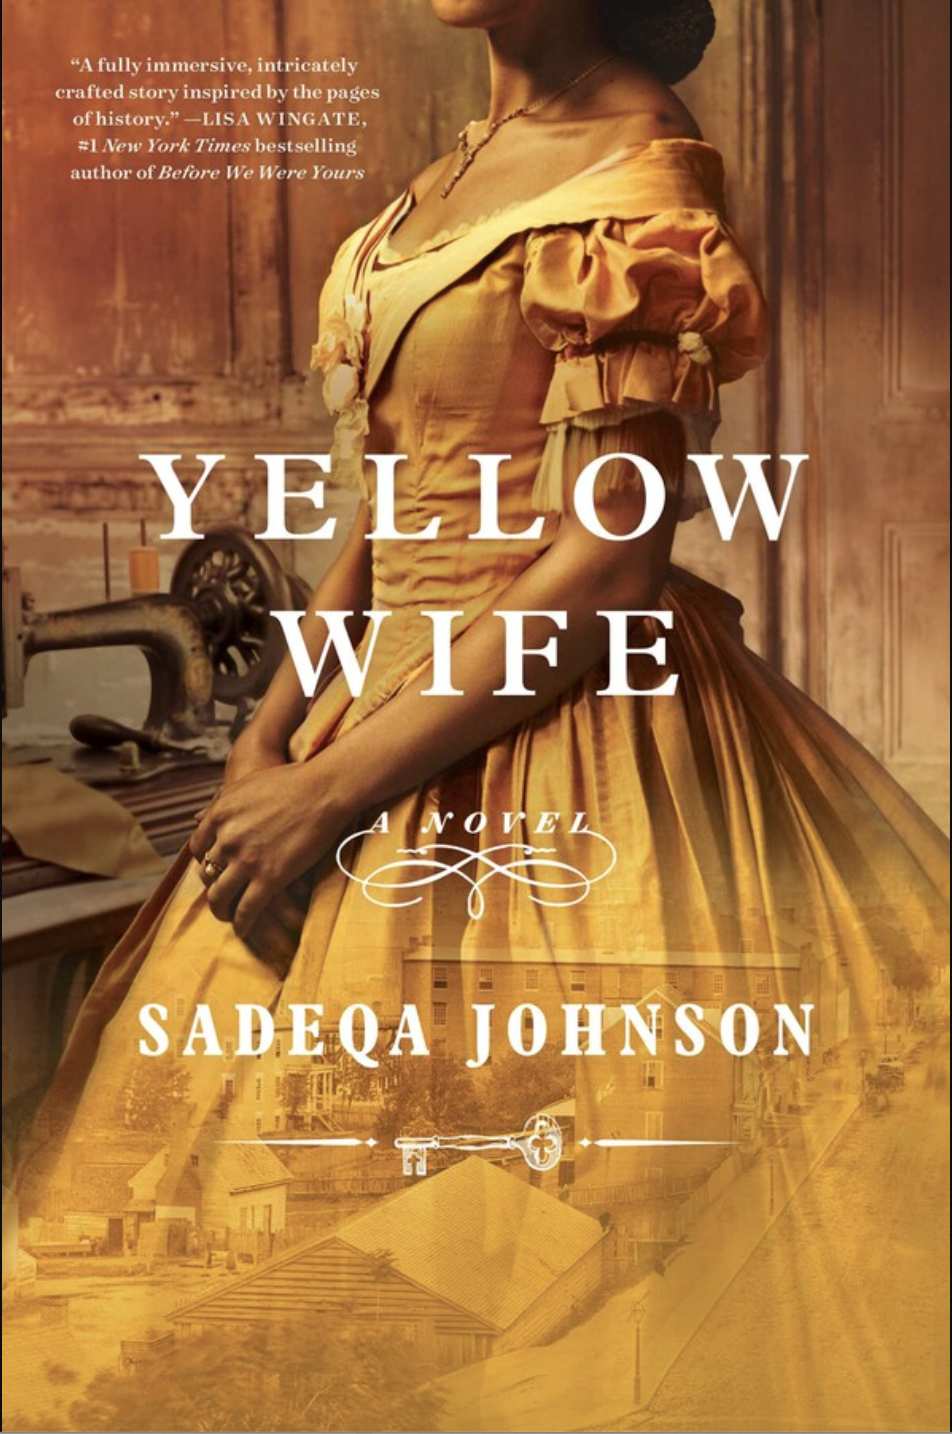 """<p><strong>Sadeqa Johnson</strong></p><p>bookshop.org</p><p><strong>$23.92</strong></p><p><a href=""""https://go.redirectingat.com?id=74968X1596630&url=https%3A%2F%2Fbookshop.org%2Fbooks%2Fyellow-wife%2F9781982149109&sref=https%3A%2F%2Fwww.goodhousekeeping.com%2Flife%2Fentertainment%2Fg32842006%2Fblack-history-books%2F"""" rel=""""nofollow noopener"""" target=""""_blank"""" data-ylk=""""slk:Shop Now"""" class=""""link rapid-noclick-resp"""">Shop Now</a></p><p>For most of her life, Pheby Delores Brown has been relatively sheltered from the worst of enslaved life by her mother's position as a plantation woman and favor from the master's sister. But all of that changes when she turns 18 and finds herself thrust into the Devil's Half Acre, a horrific jail in Richmond. There, she has to carefully navigate the jailer's contradictory nature in order to survive. This unputdownable story barely lets you breathe. </p>"""